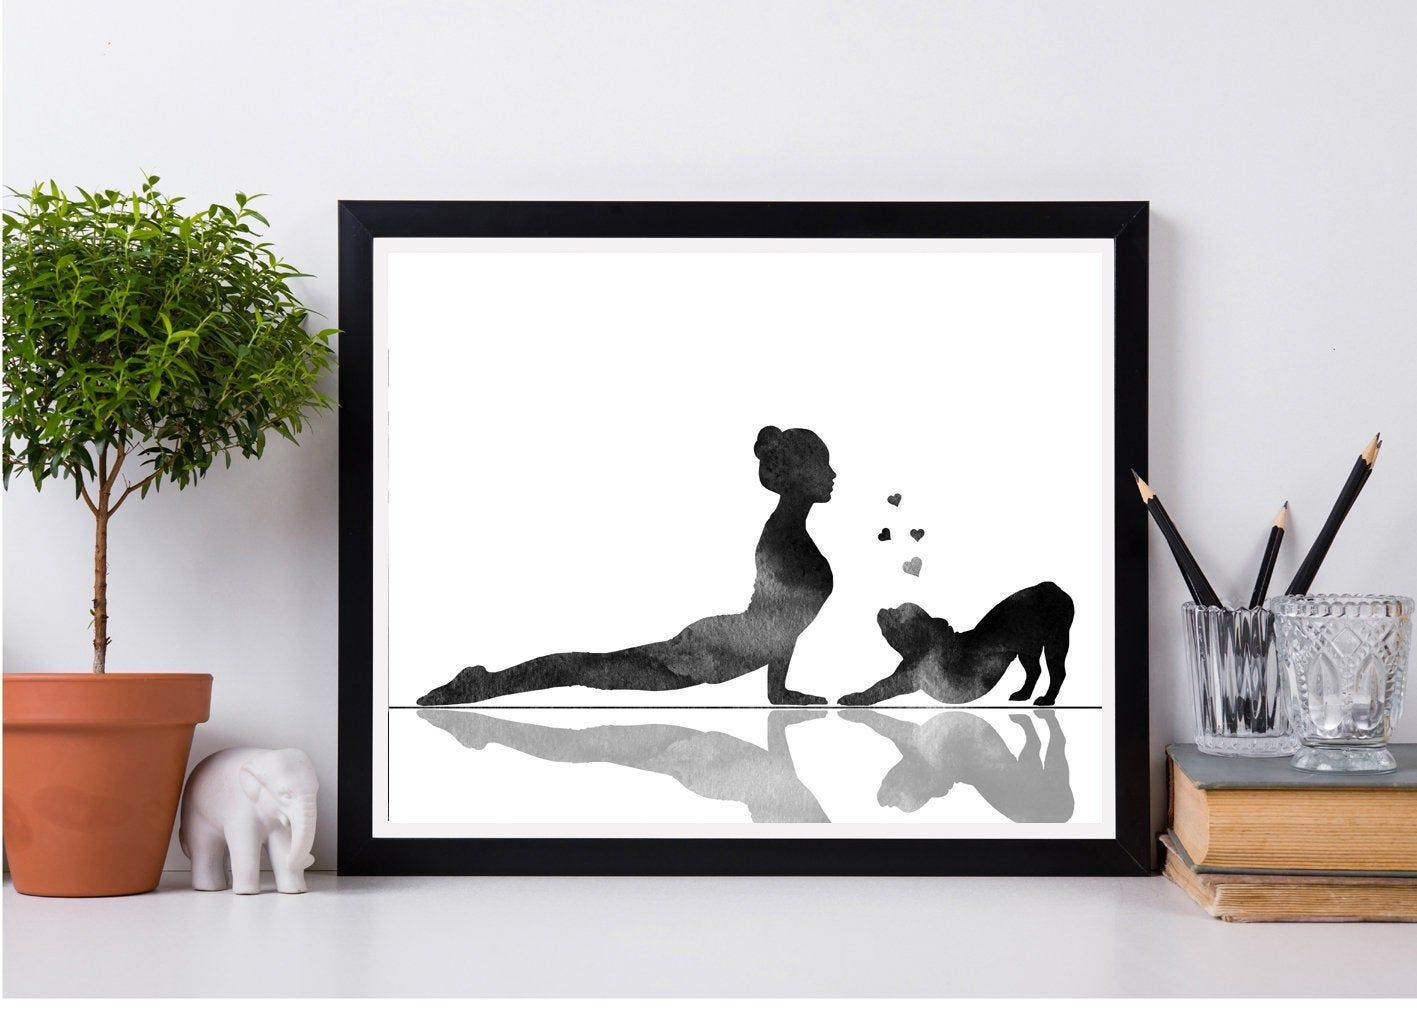 Yoga room decor, Woman with dog decor, Yoga exercises, French bulldog print, Yoga dog print, Yoga print wall art, Instant download -   19 fitness Room mall ideas